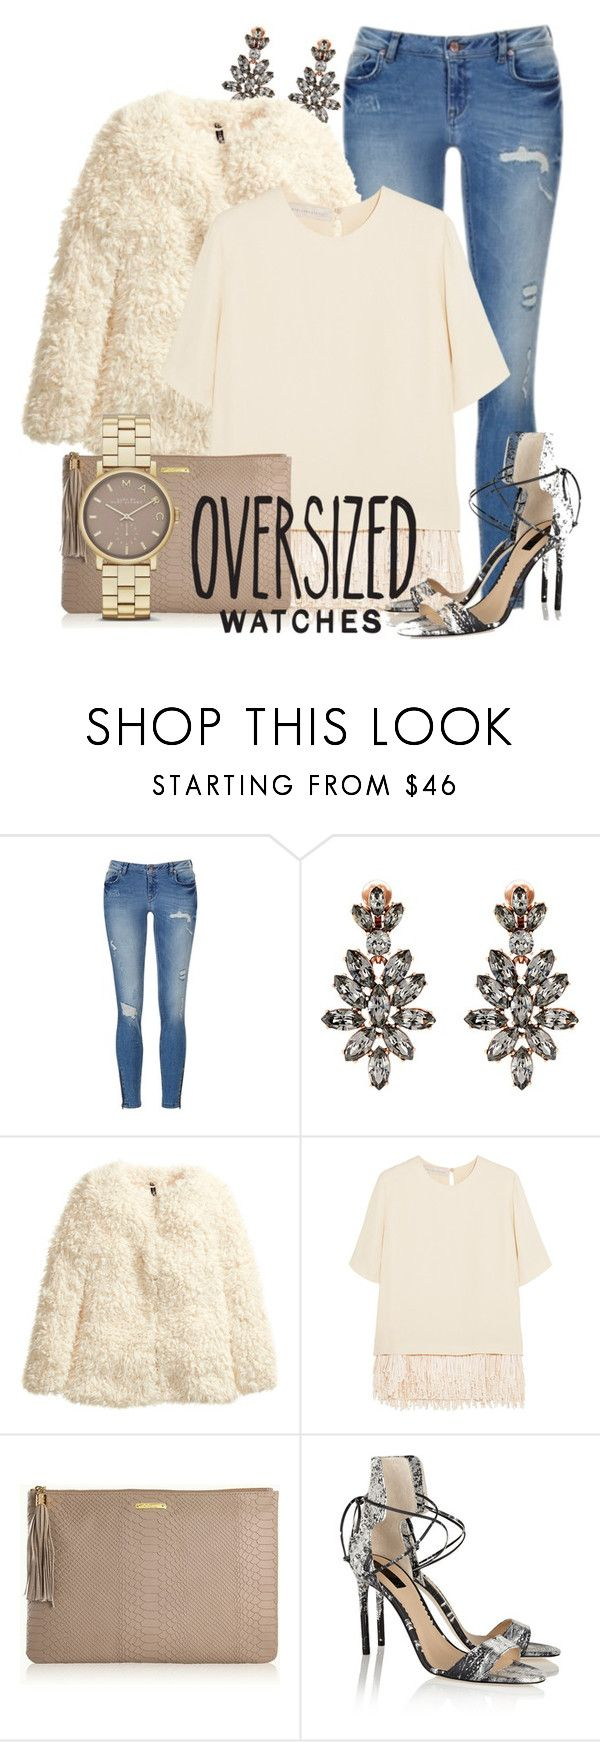 """""""Oversized Watches"""" by laex ❤ liked on Polyvore featuring Oscar de la Renta, H&M, STELLA McCARTNEY, GiGi New York, Marc by Marc Jacobs and Reed Krakoff"""